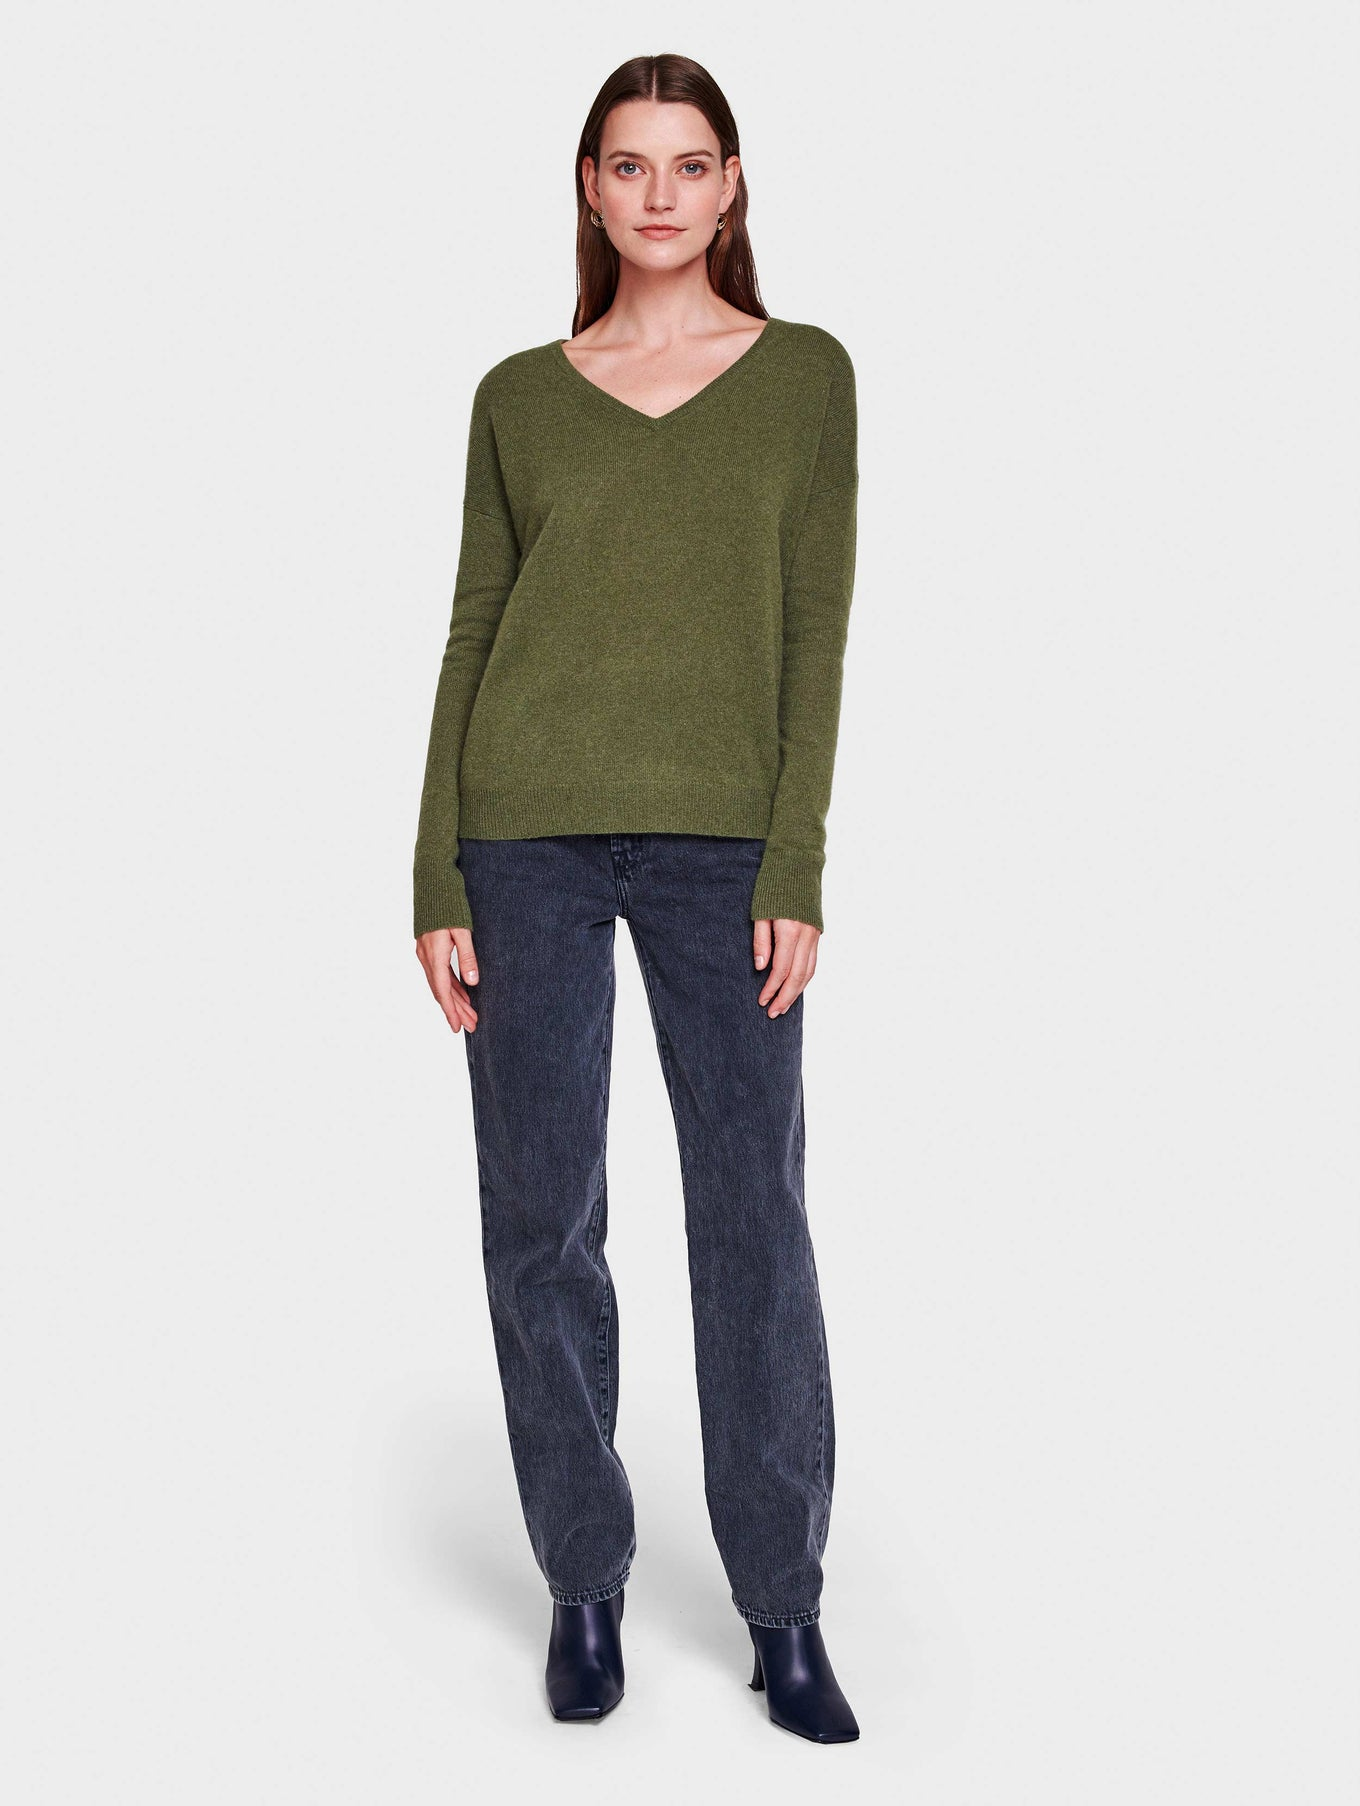 Essential Cashmere V Neck - Olive Heather - Image 2